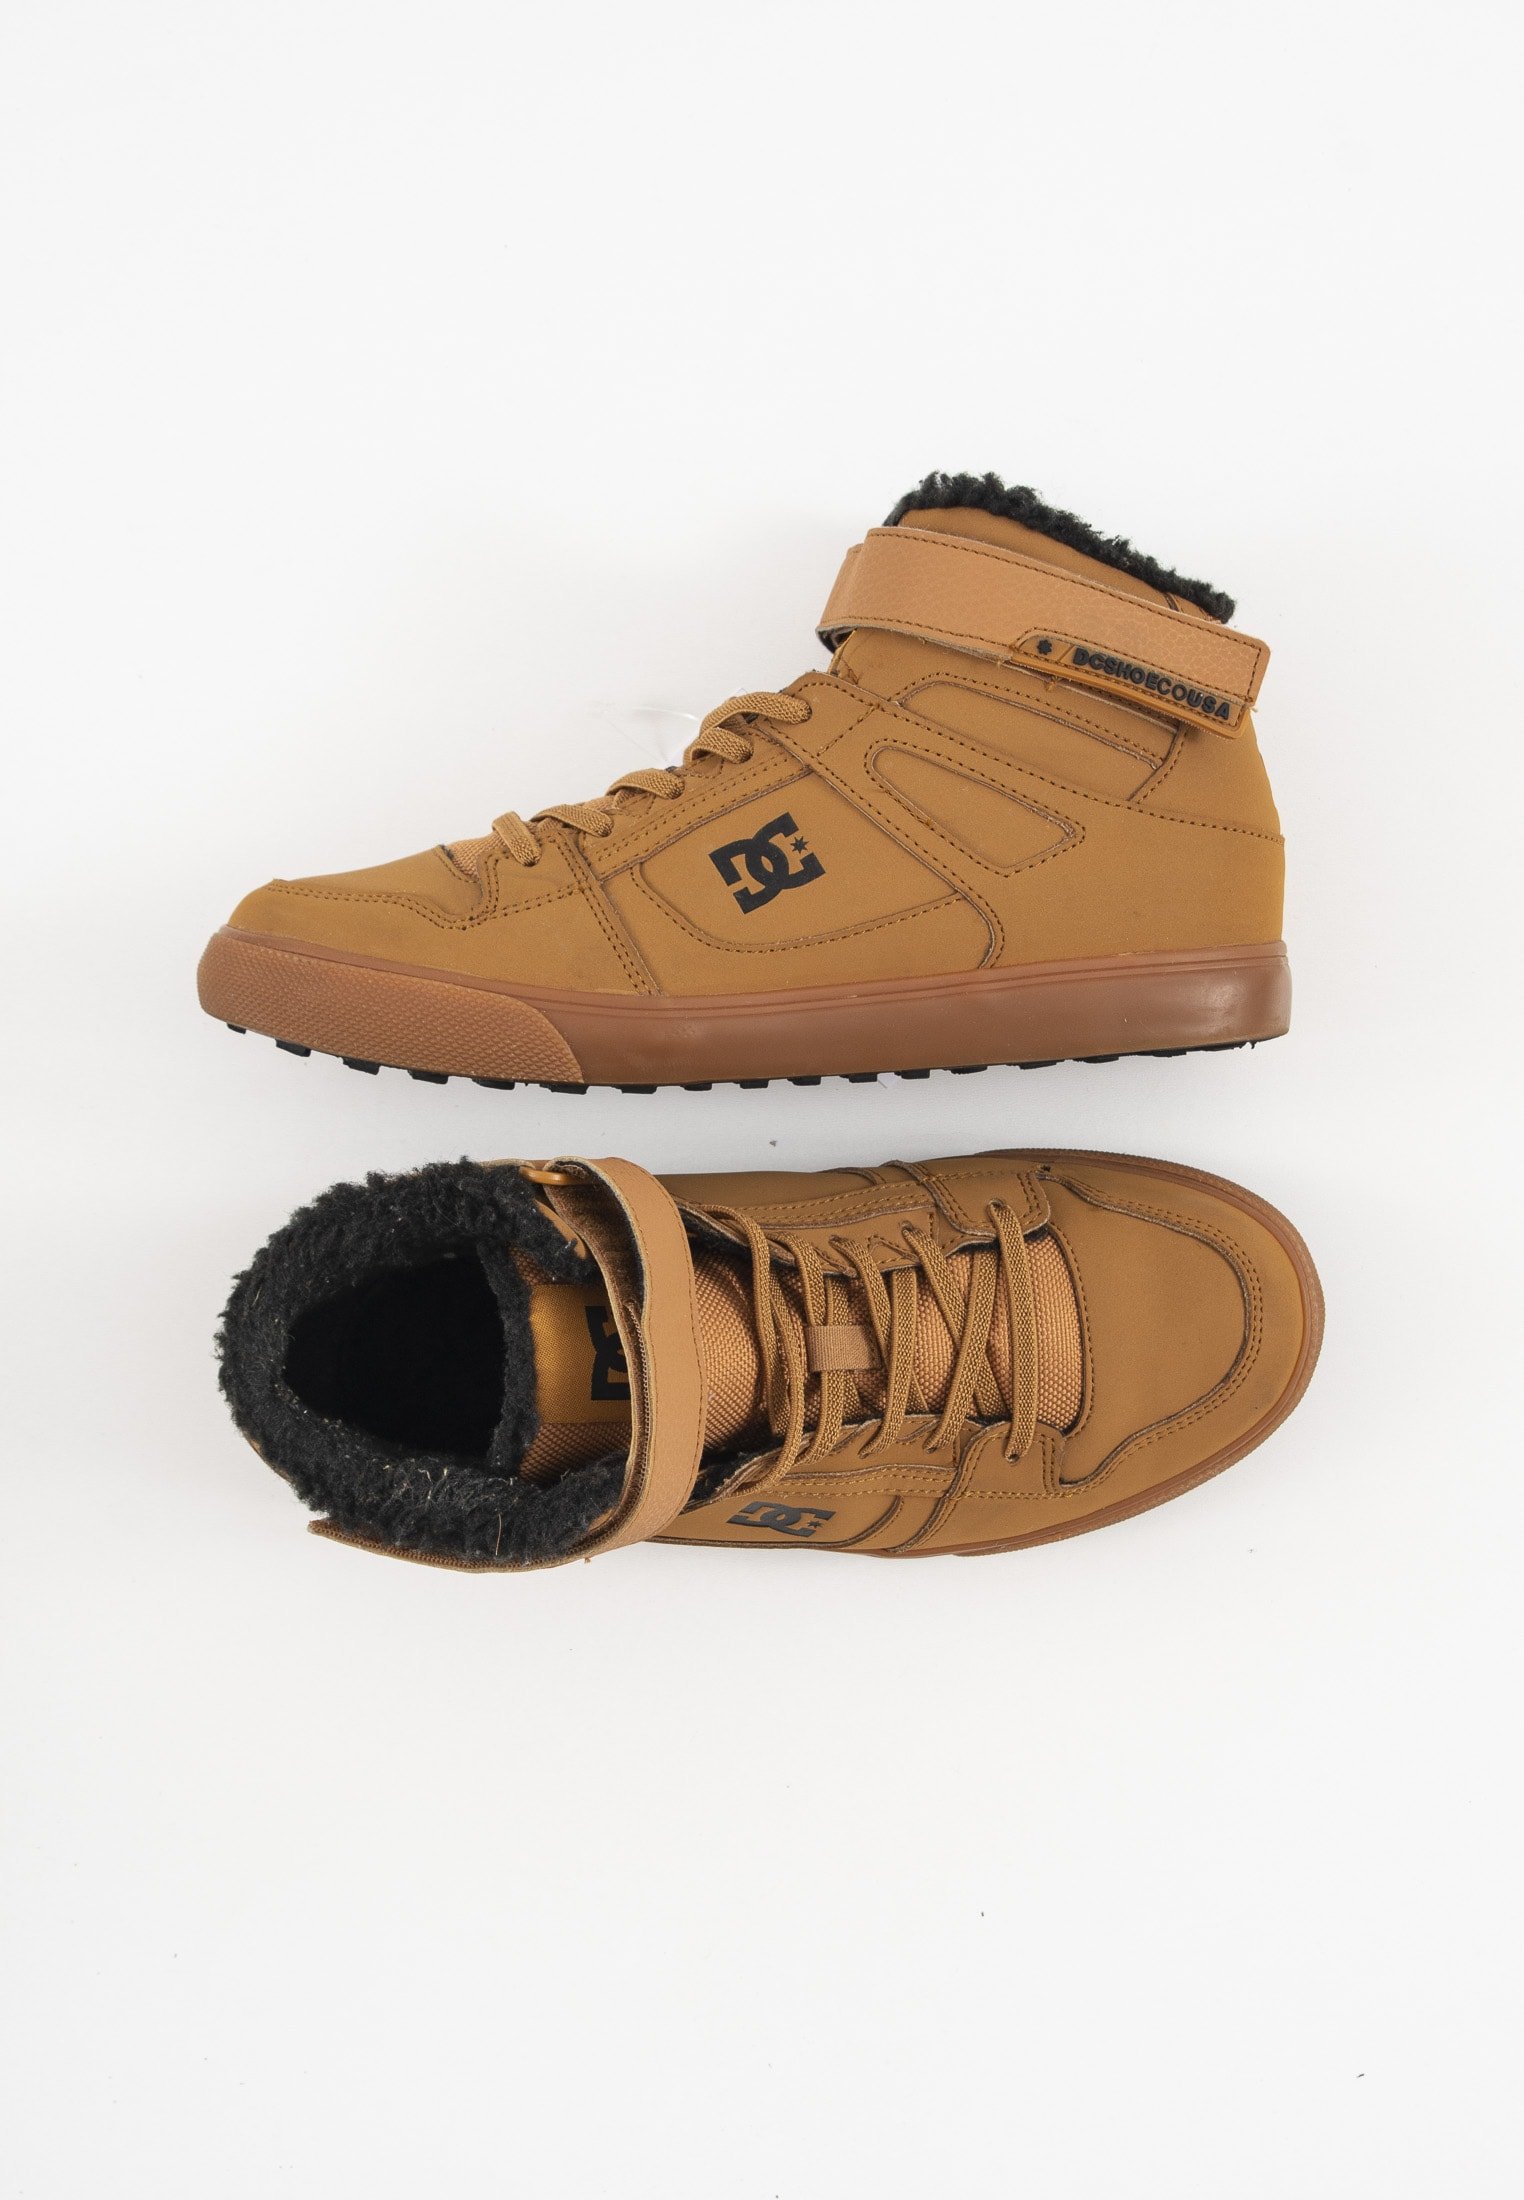 DC Shoes Stiefel / Stiefelette / Boots Beige Gr.39